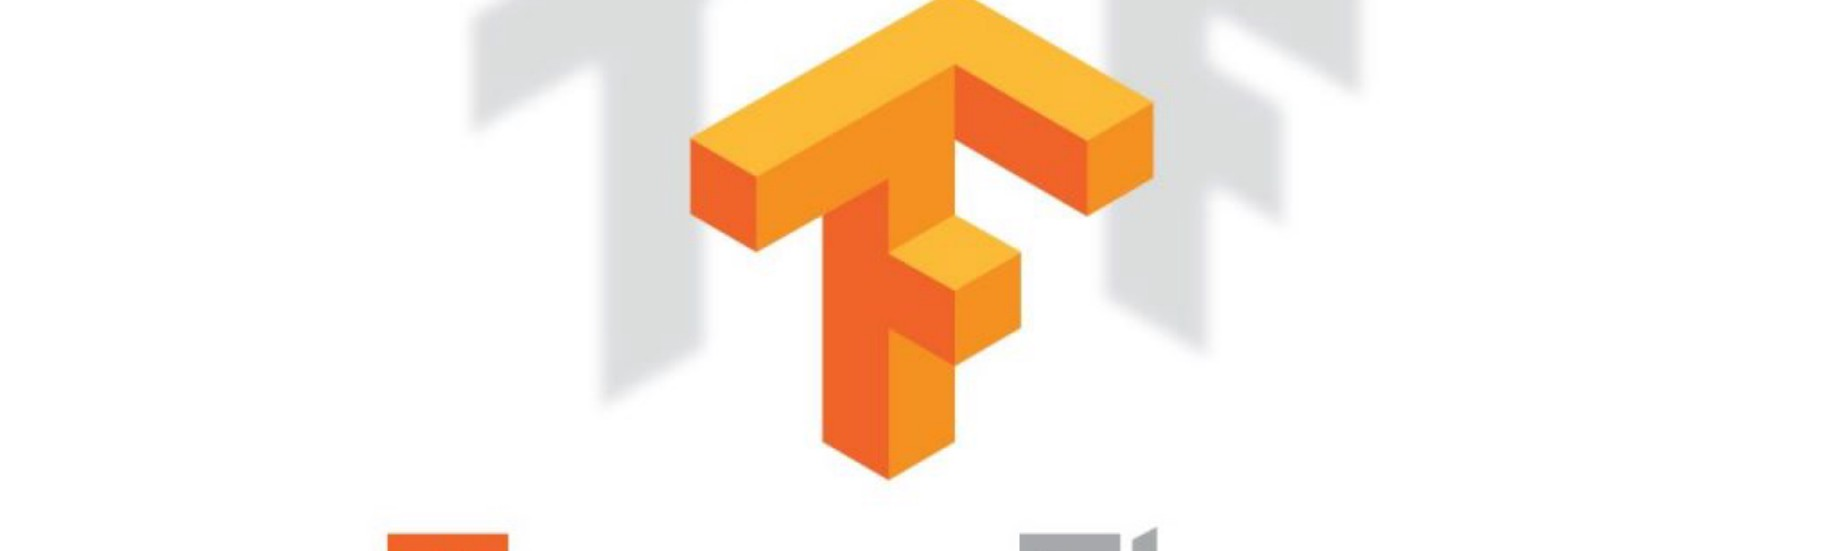 An Introduction to Implementing Deep Learning using TensorFlow